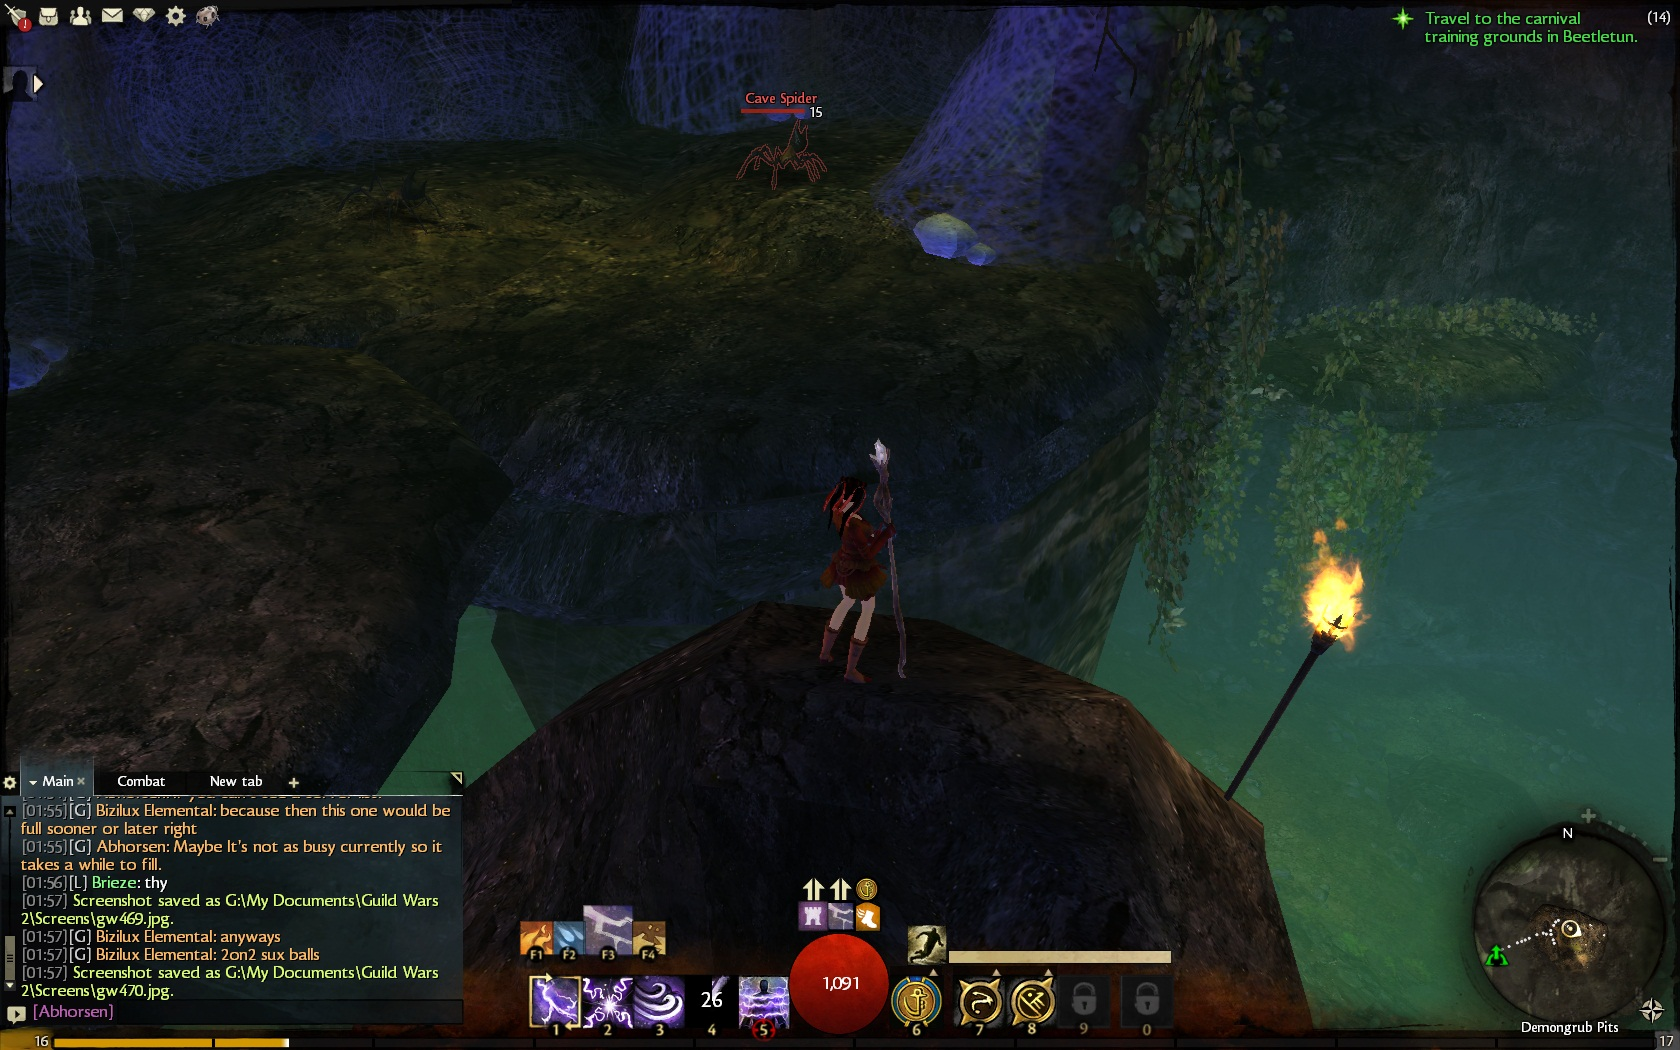 gw2 Demongrub Pits jumping route